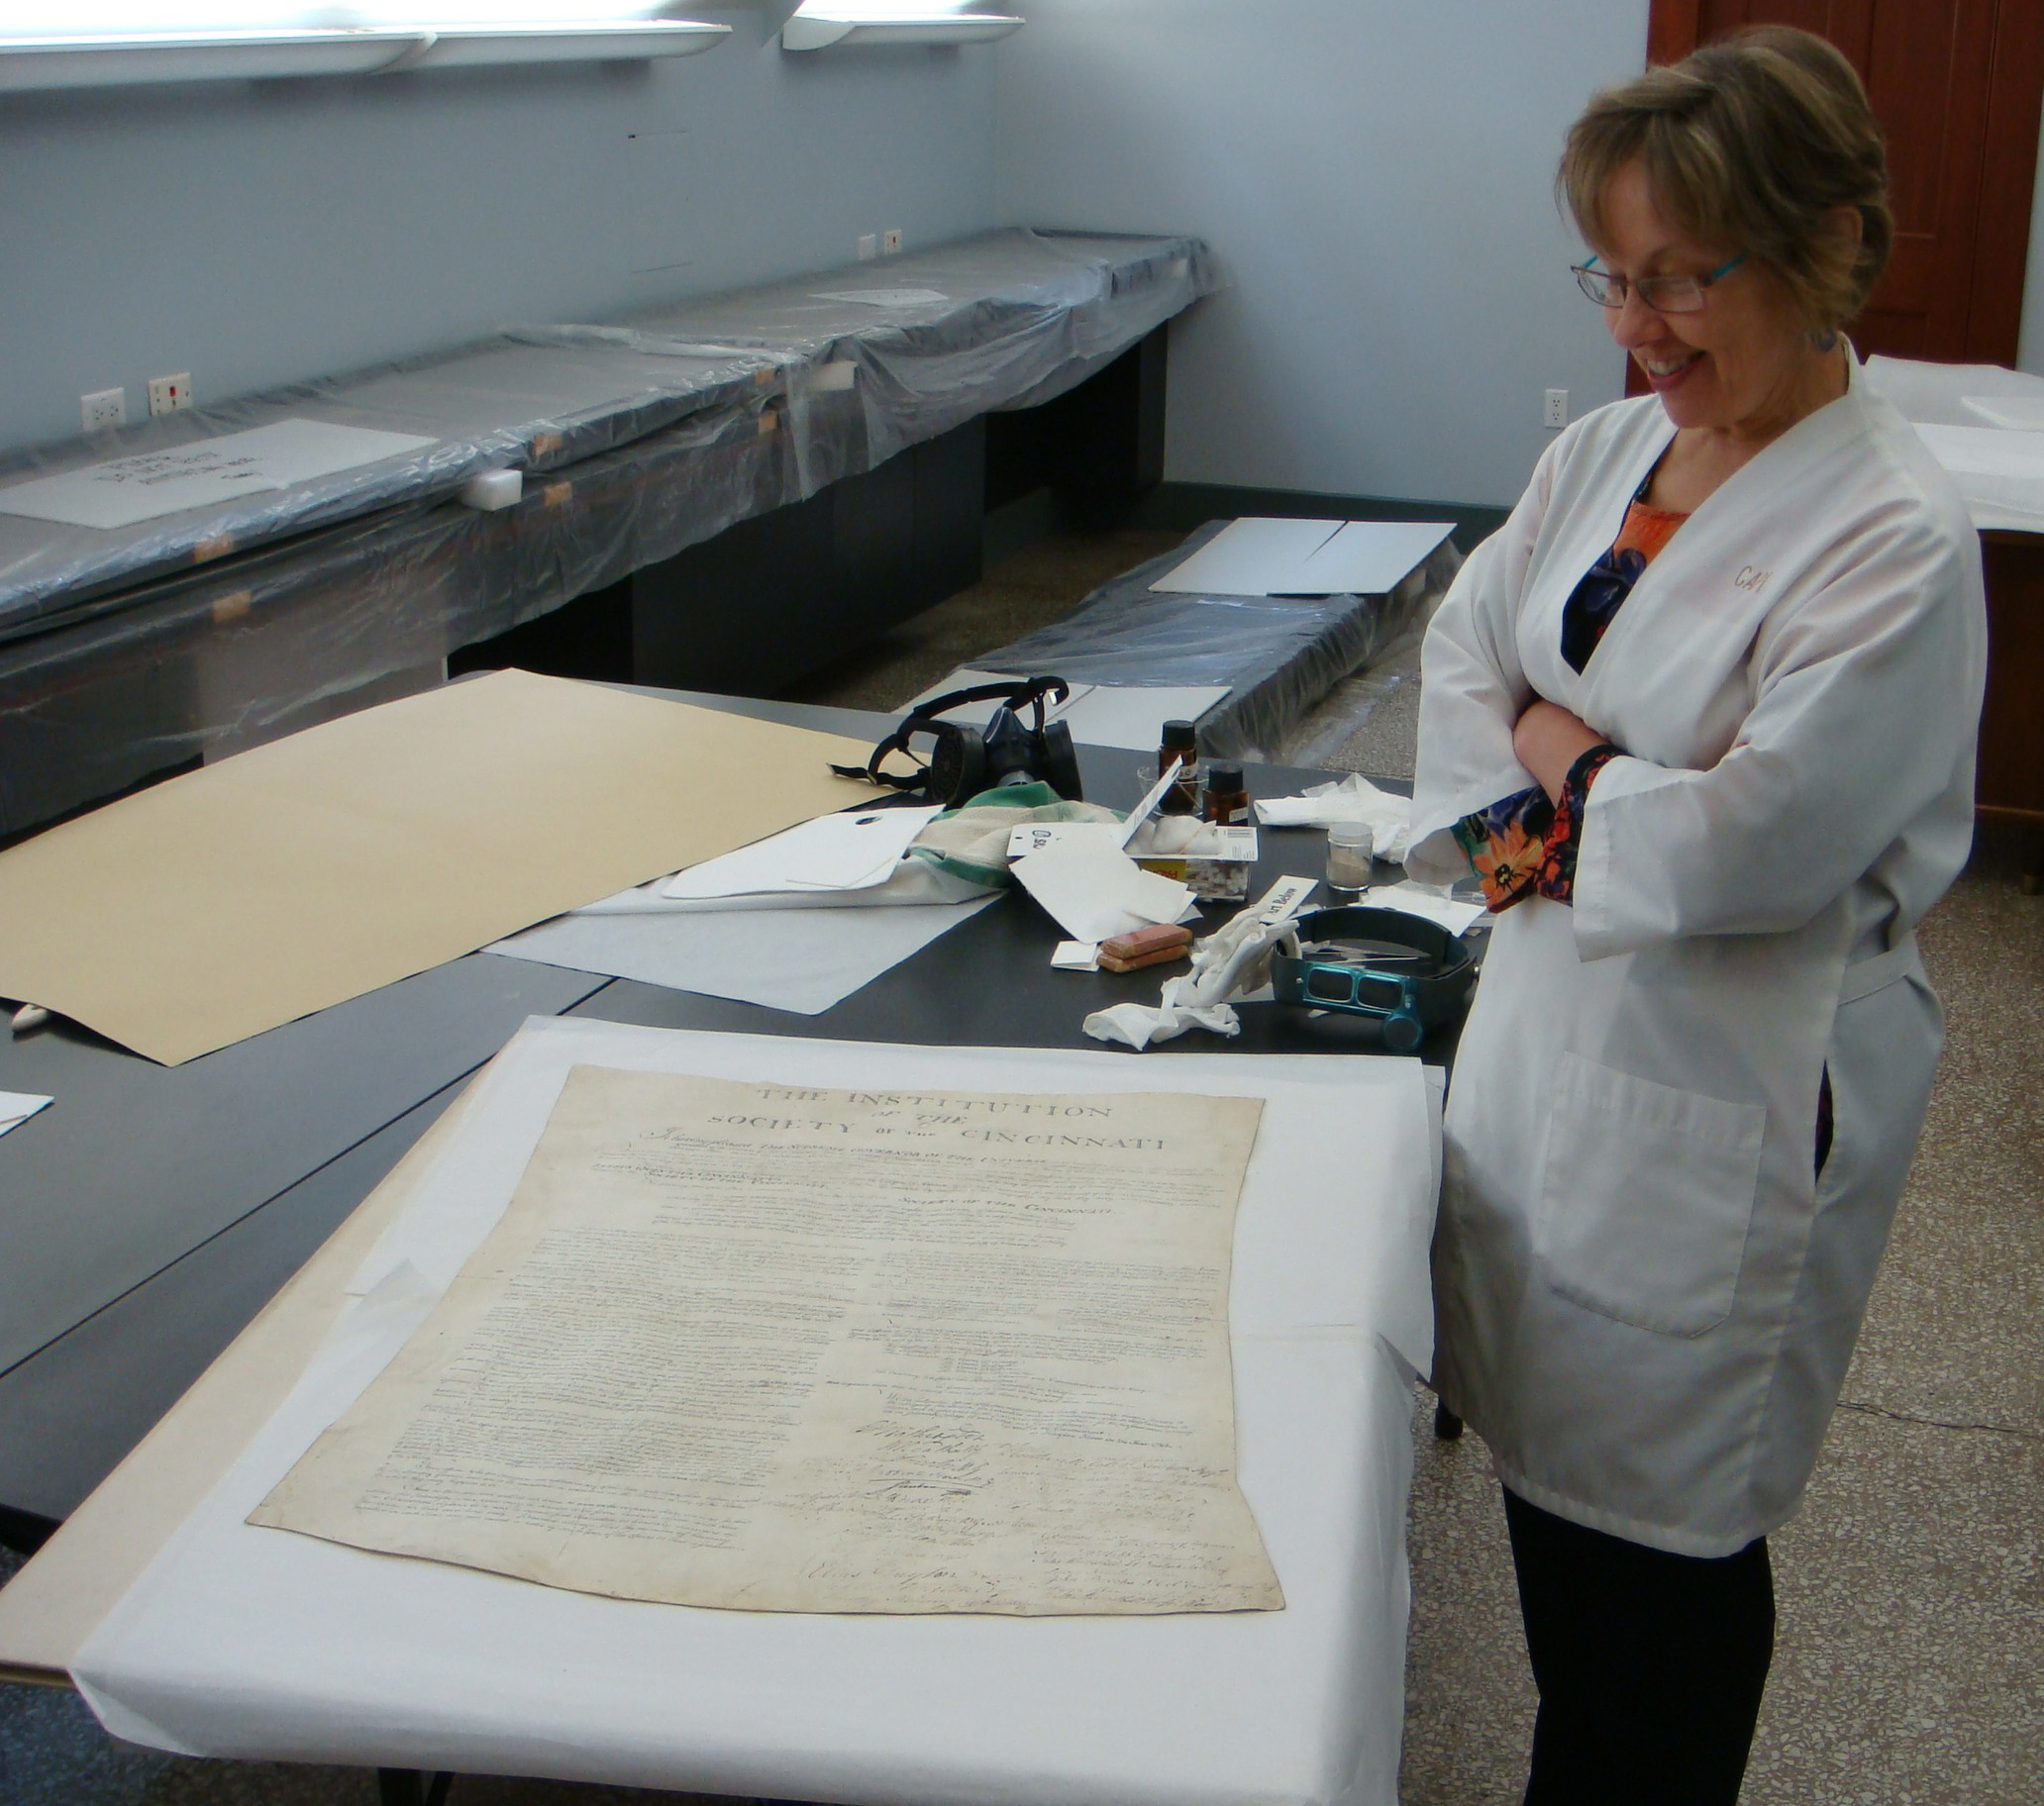 Society Institution, conservator Christine Smith in lab, Oct 18 2007